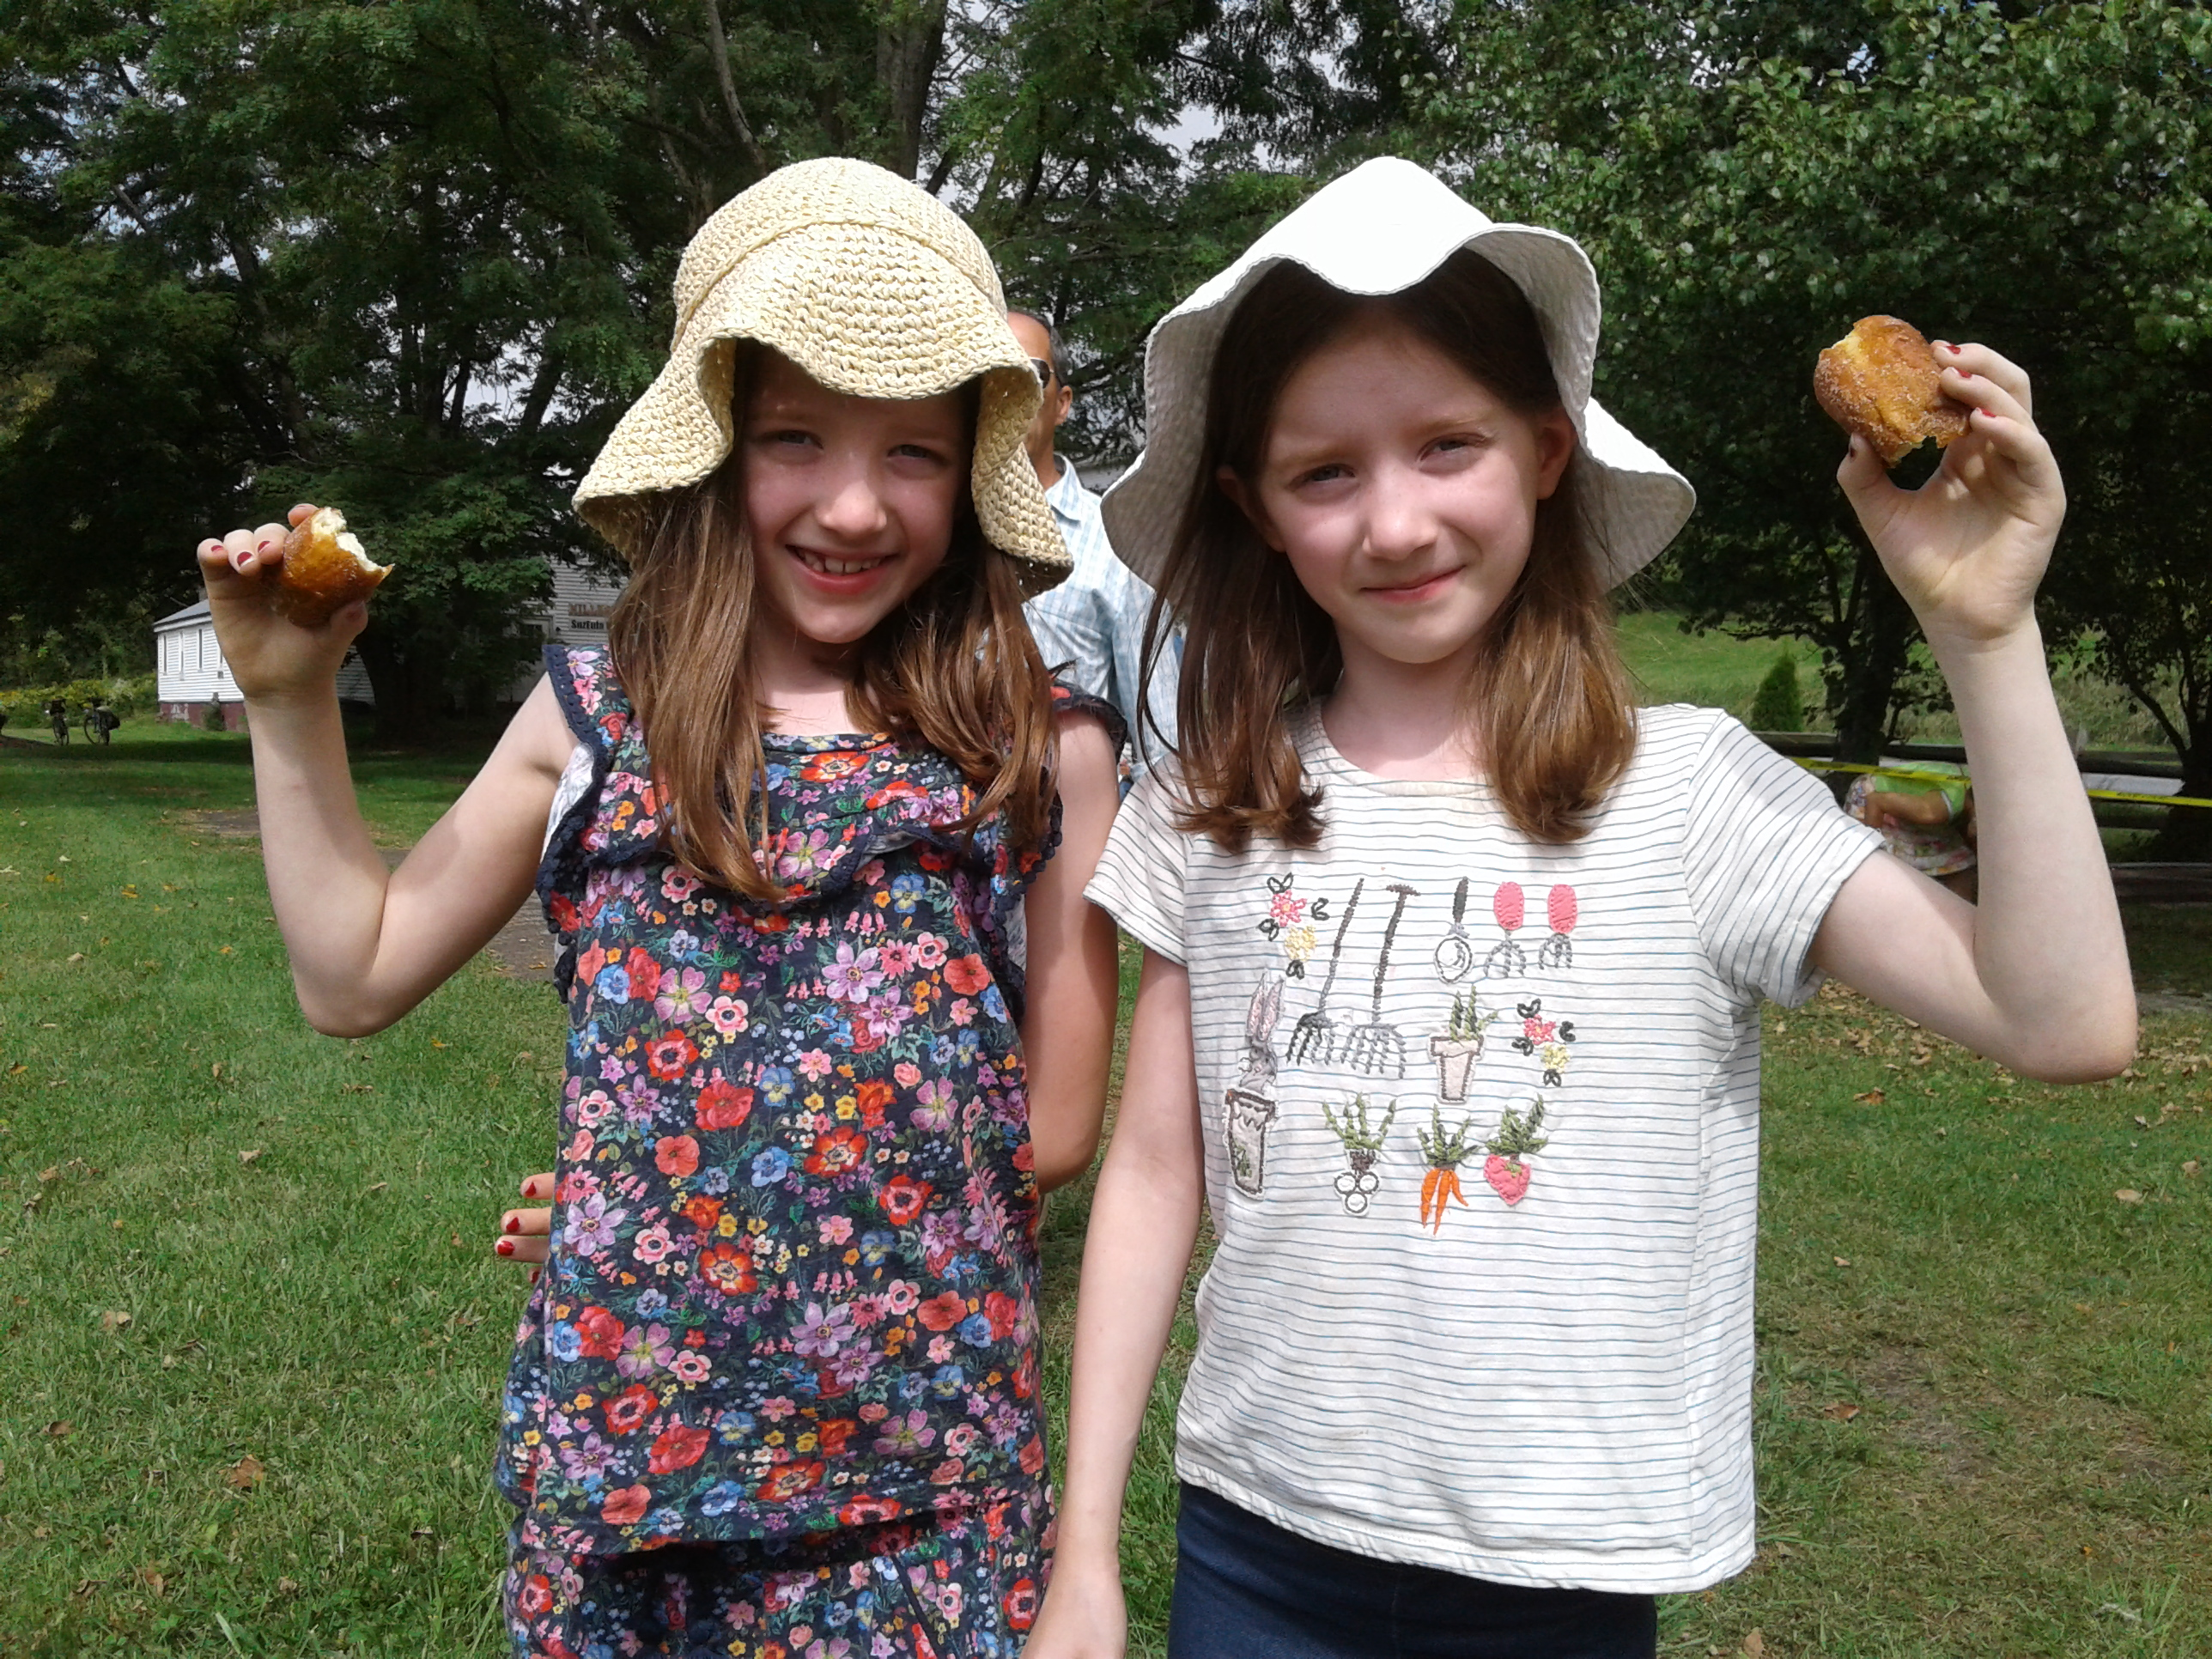 <strong>From left, twins Hazel and Clara Mork from Stanfordville split a doughnut purchased from the Cosmic Donuts tent on the Harlem Valley Rail Trail.<em>Photo by Kaitlin Lyle</em></strong>